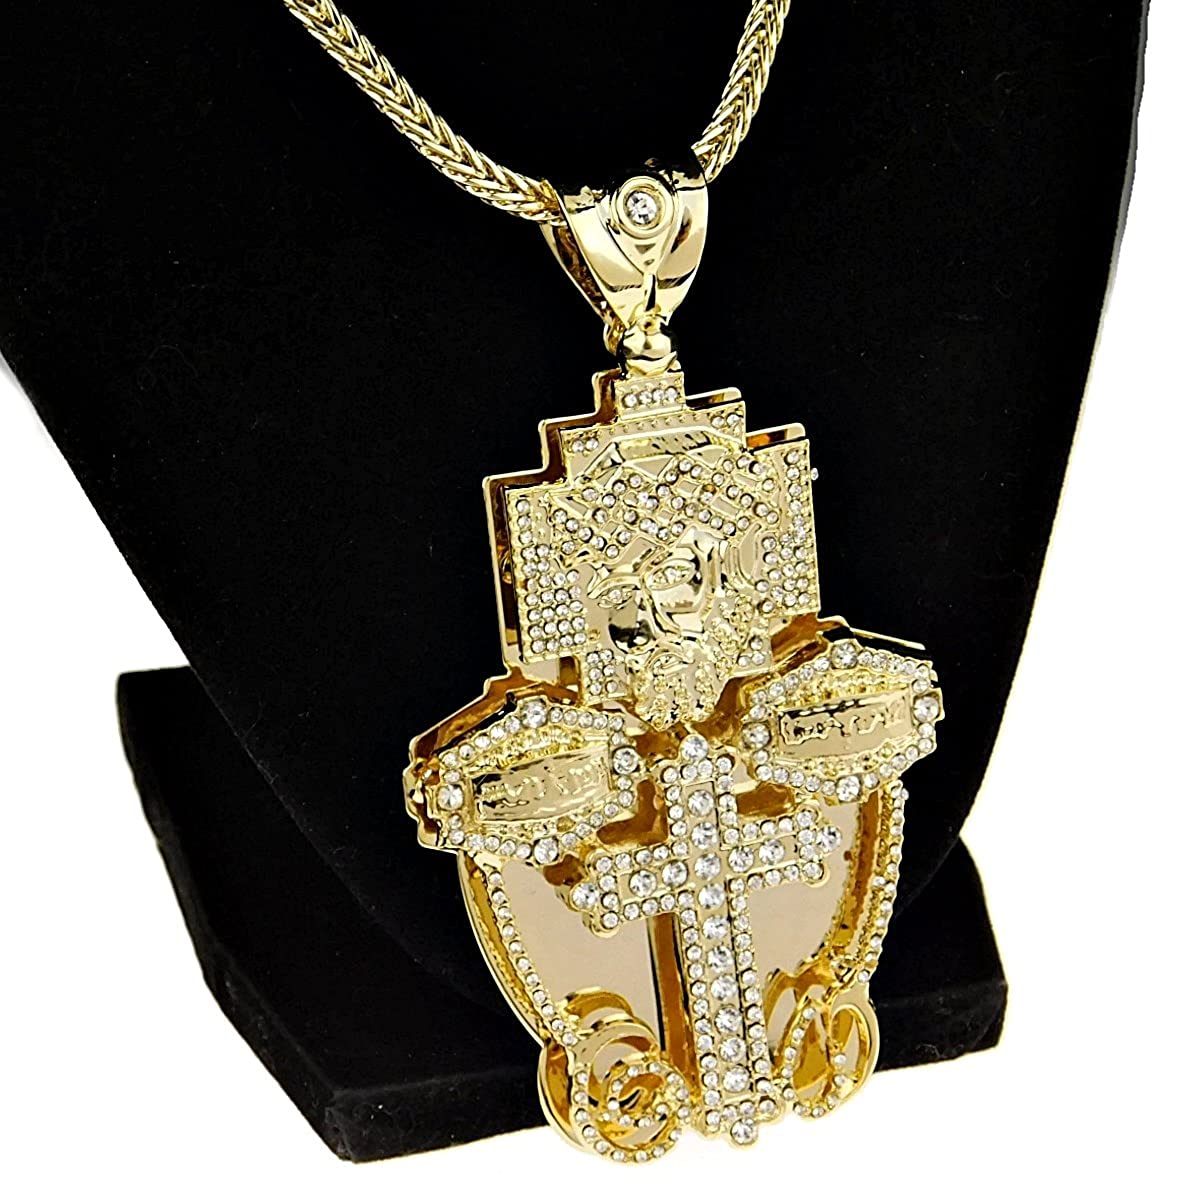 Amazon.com: Bling Cartel Jesus Piece Last Supper Cross Combo ...